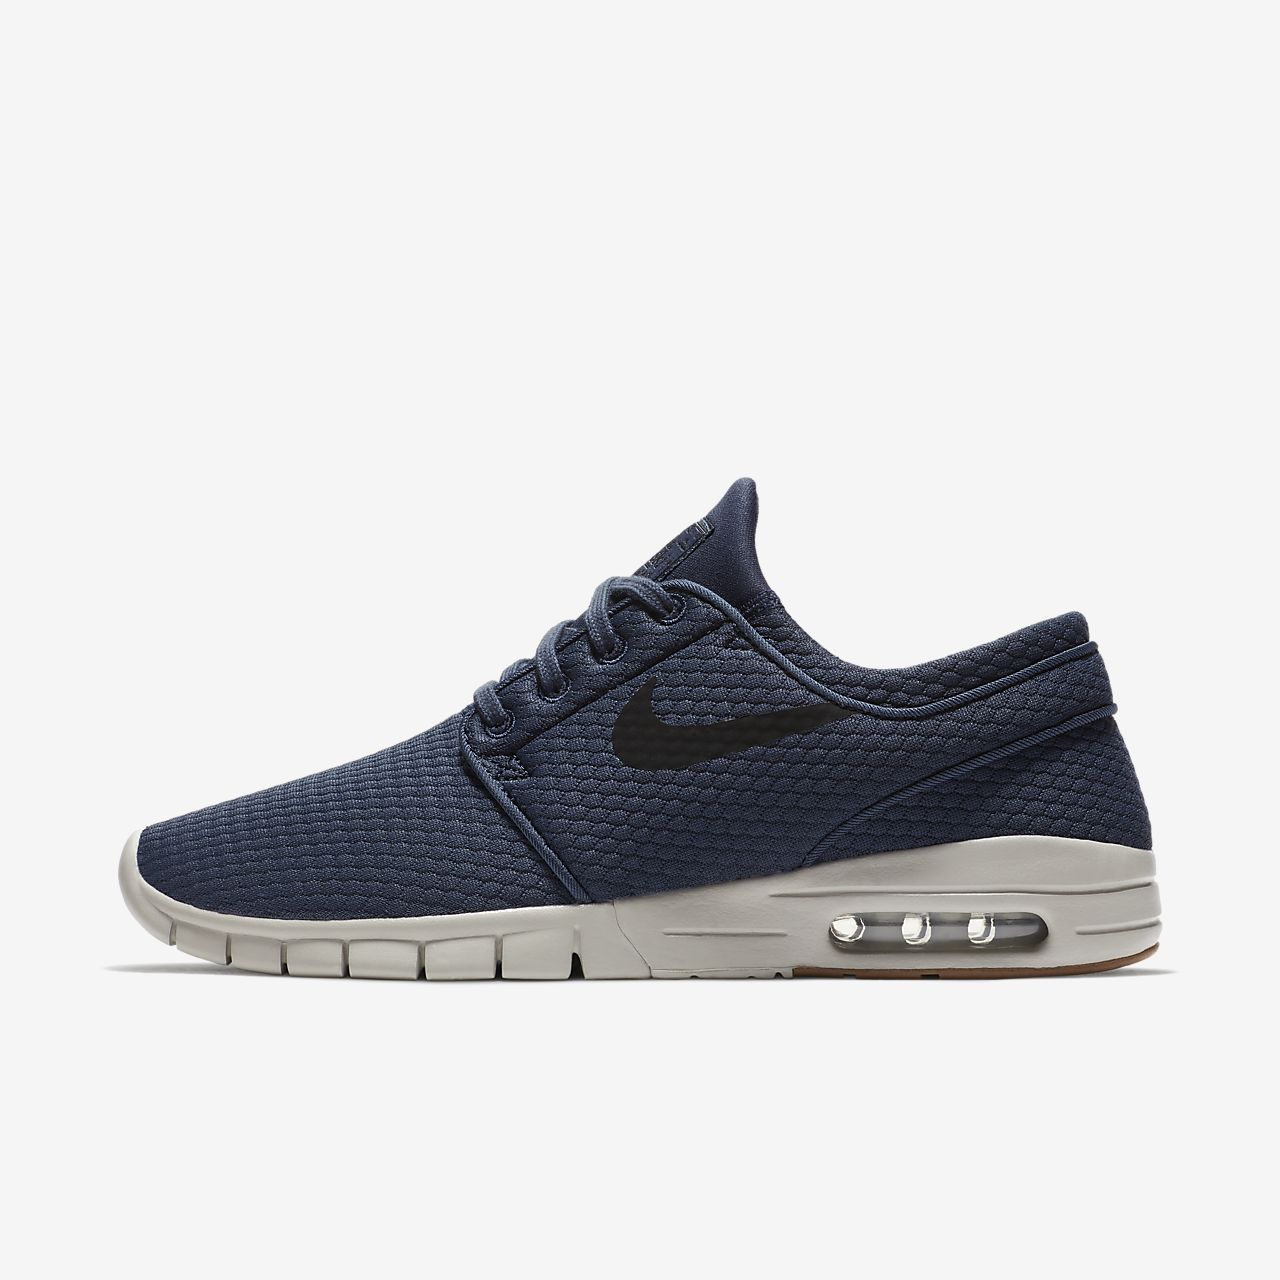 nike sb stefan janoski max men 39 s skateboarding shoe. Black Bedroom Furniture Sets. Home Design Ideas